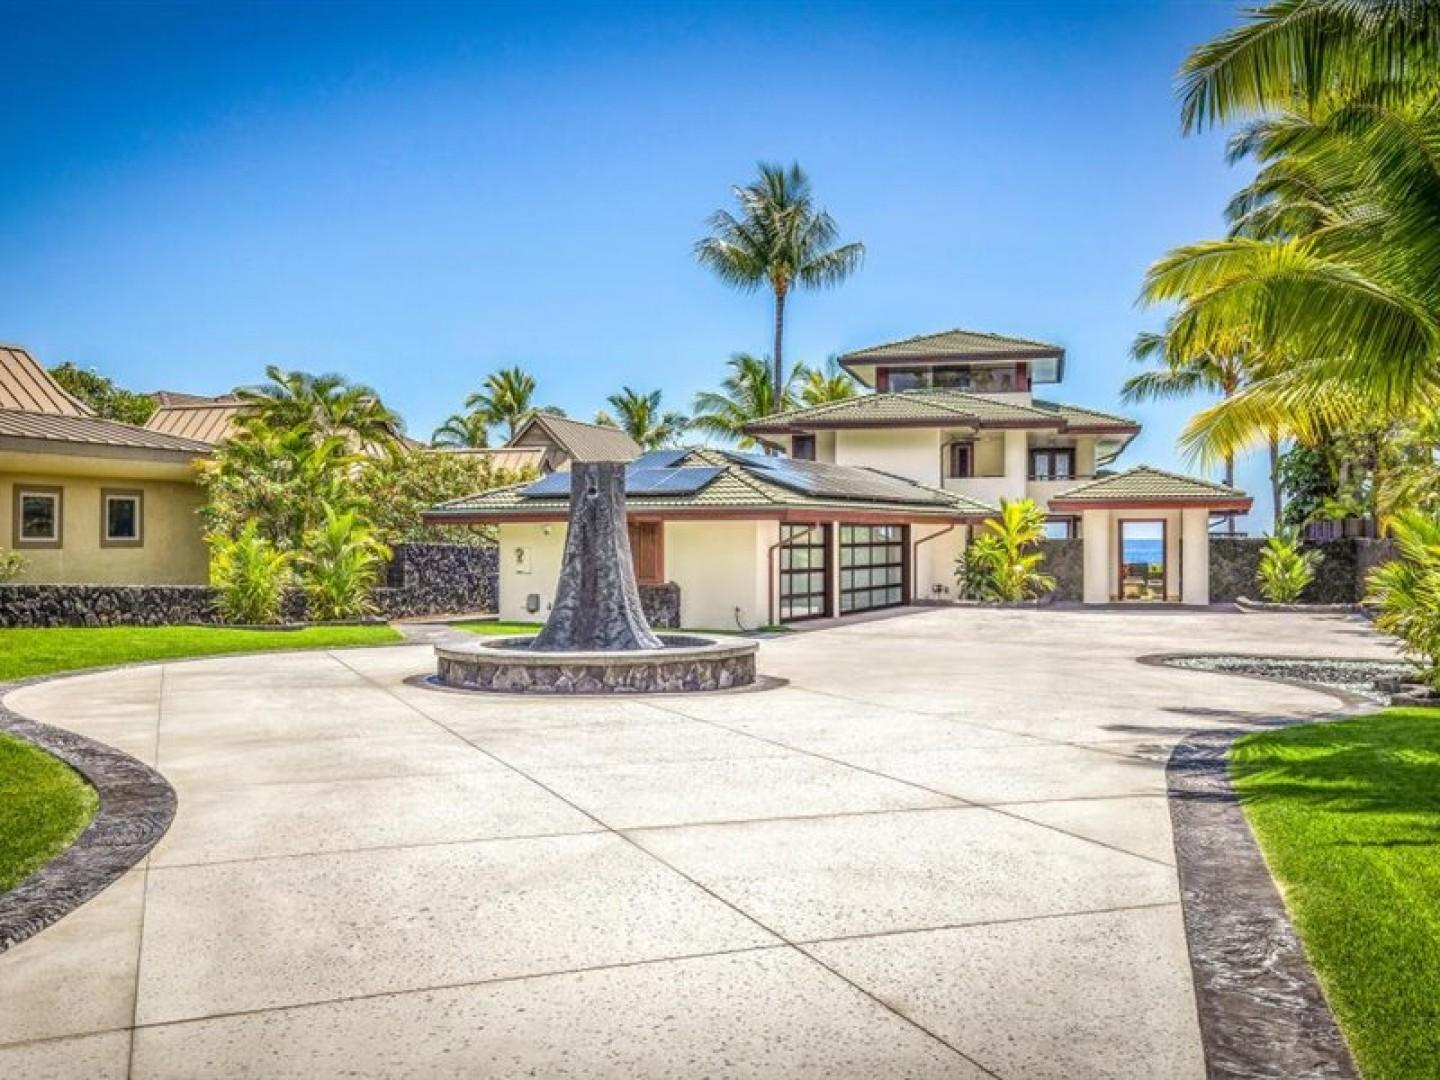 Grand entry to the property with wrap around driveway and water feature